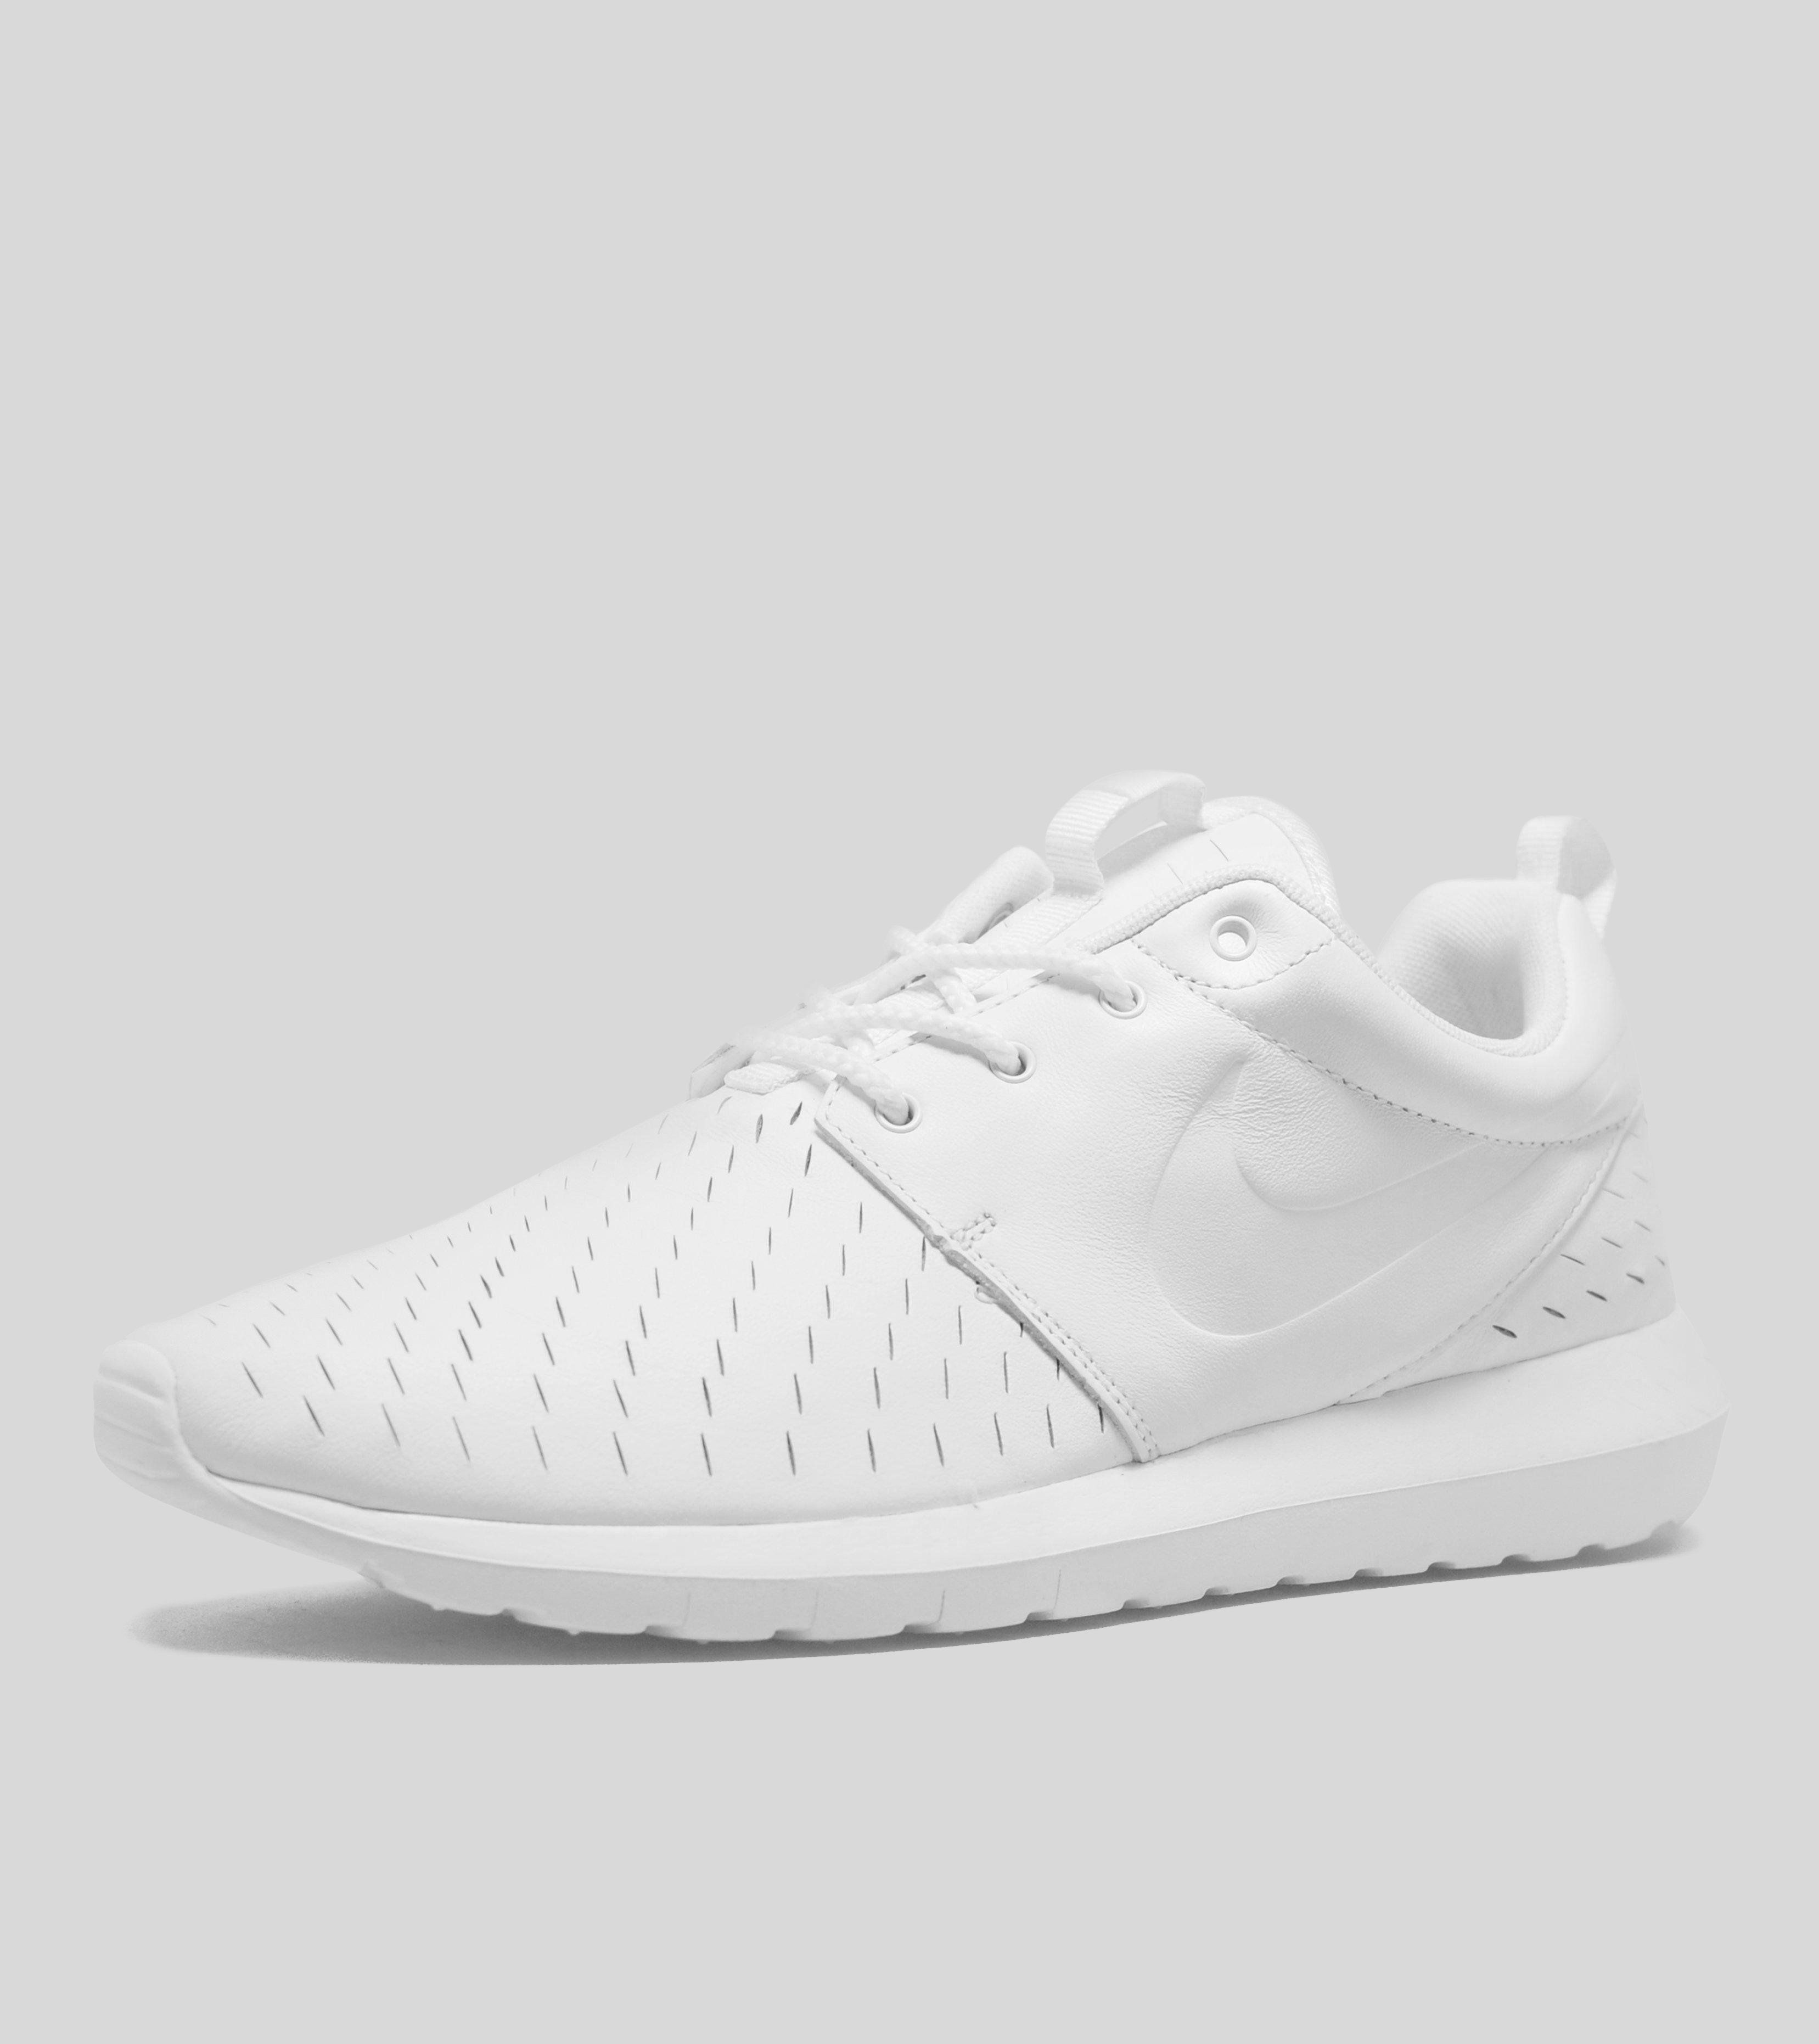 best sneakers 46b7f 3b4b3 Nike Roshe One New Motion LSR   Size